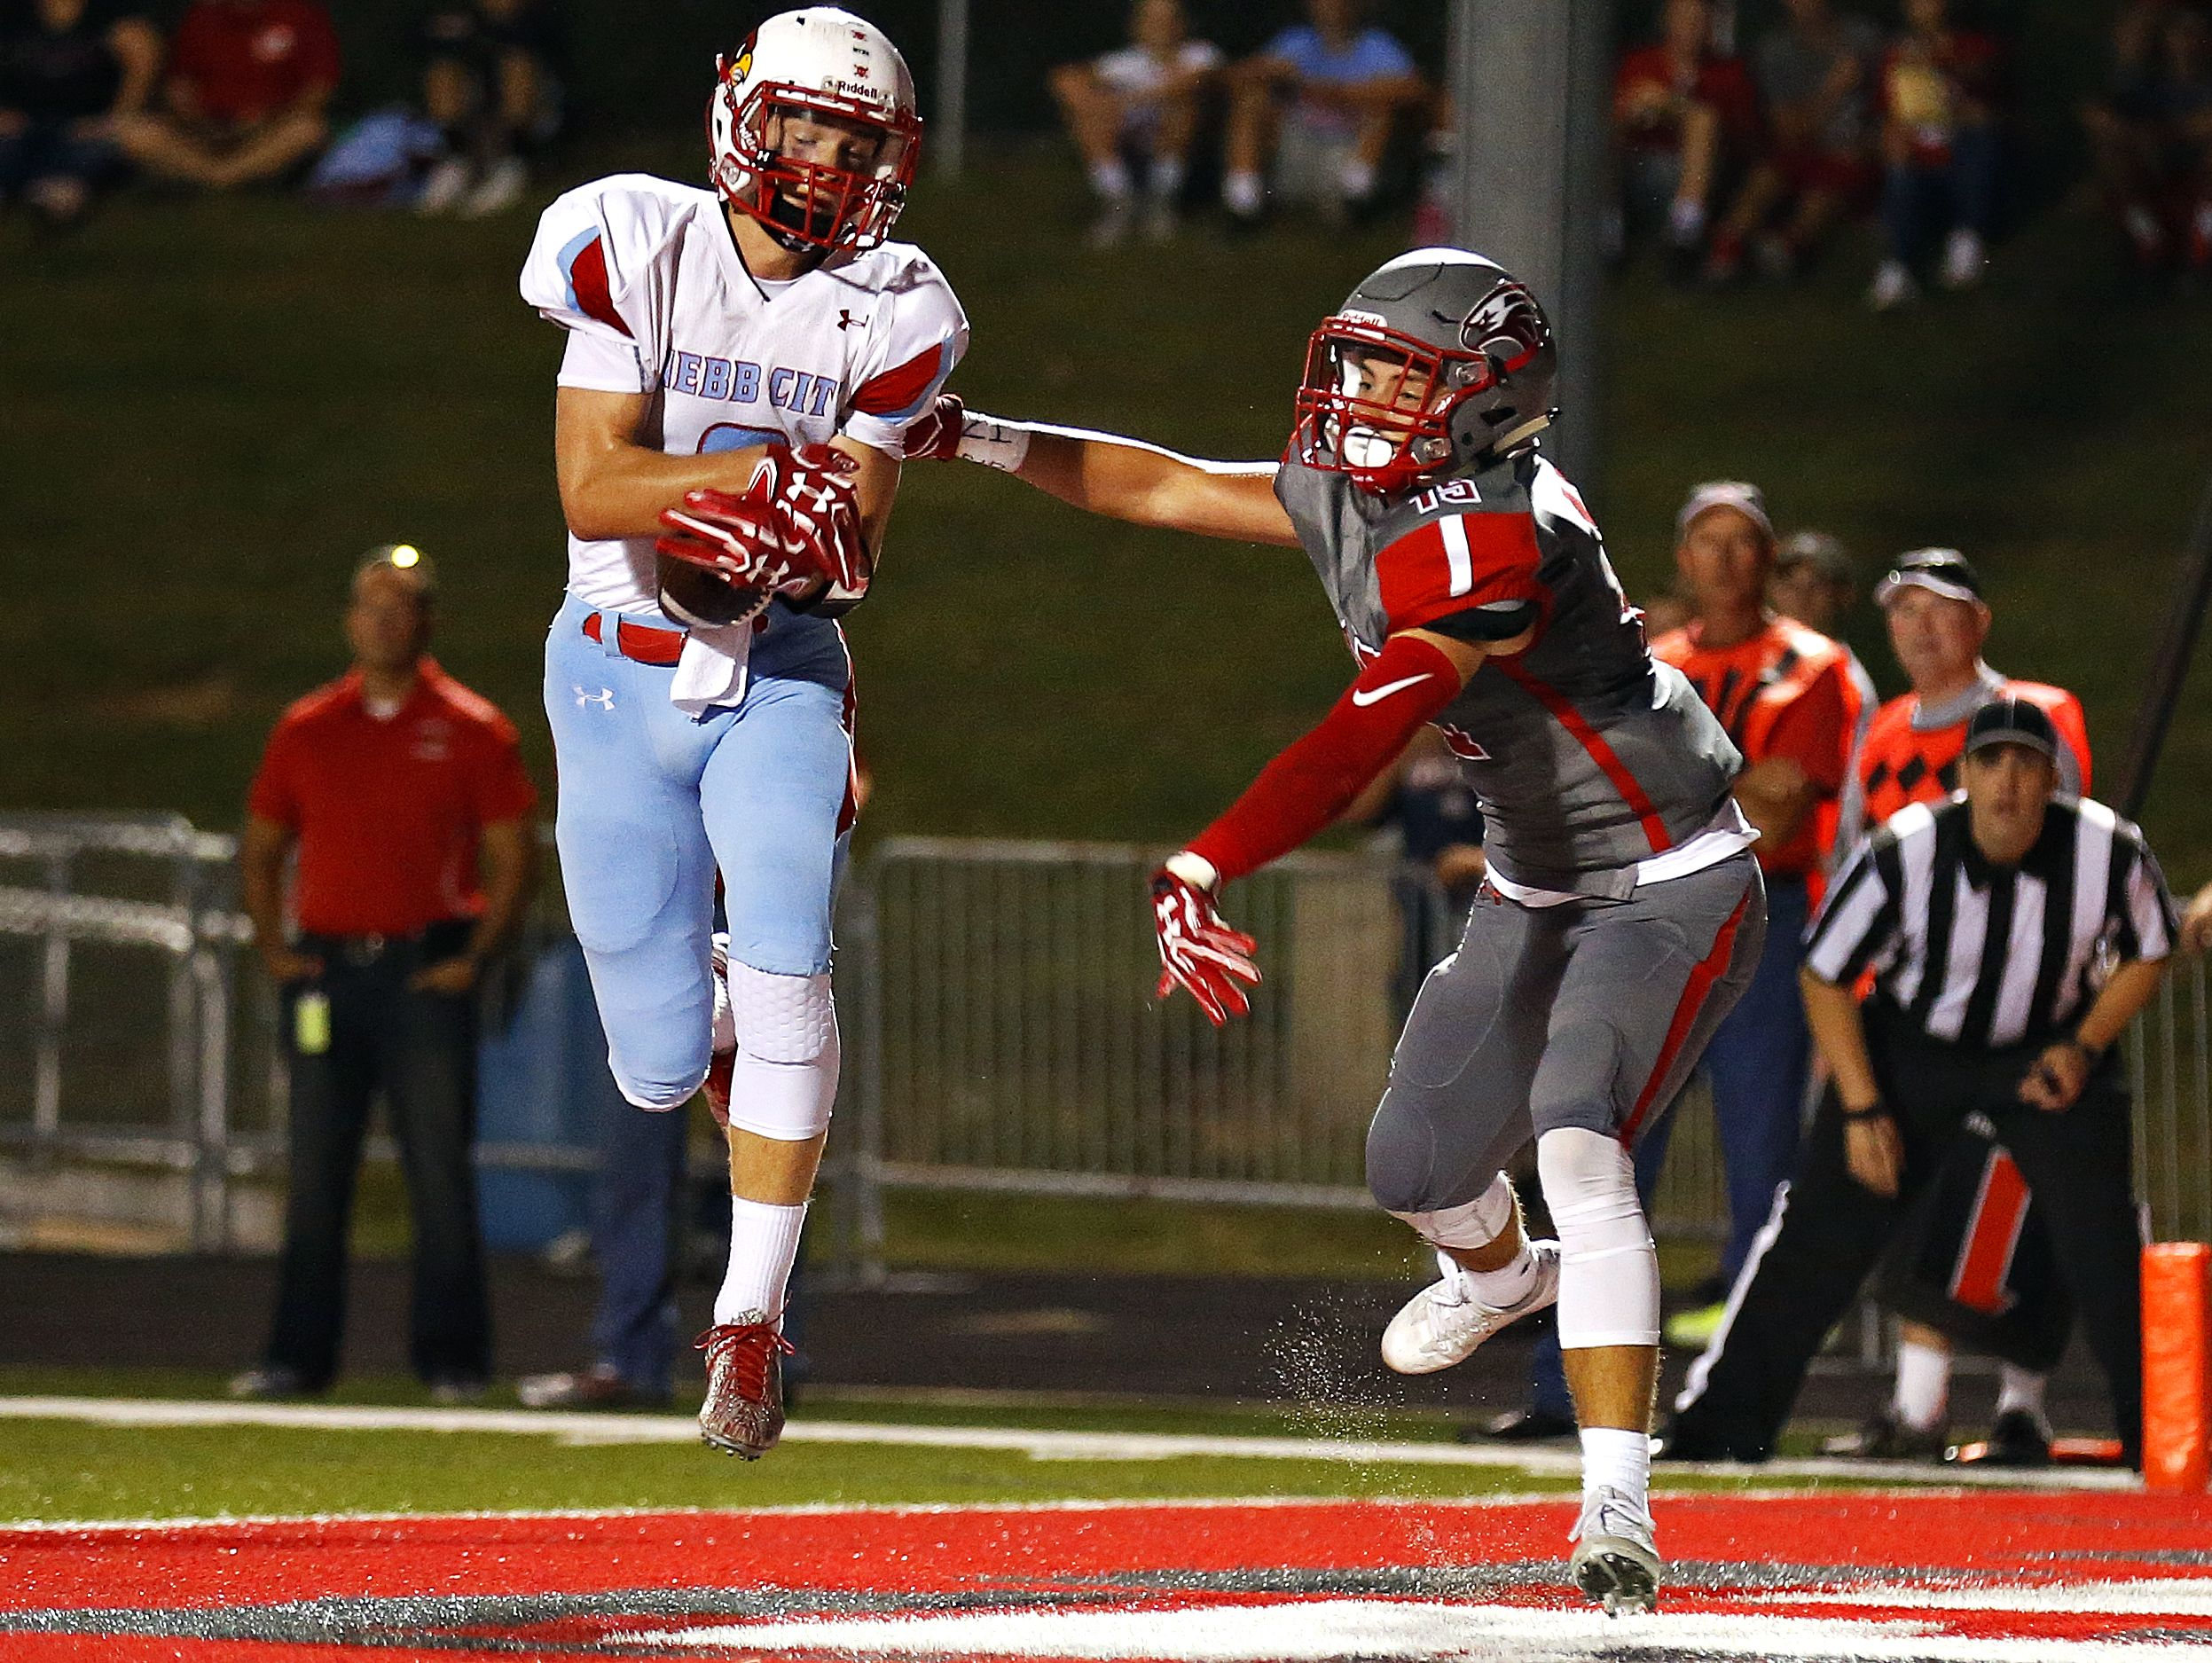 Webb City High School wide receiver Alex Gaskill (6) catches a pass in front of Eagles defensive back Spencer Stoneman (15) to score a two-point conversion during second quarter action of the football game between Nixa High School and Webb City High School at Eagles Stadium in Nixa, Mo. on Sept. 23, 2016. Webb City won the game 34-10.